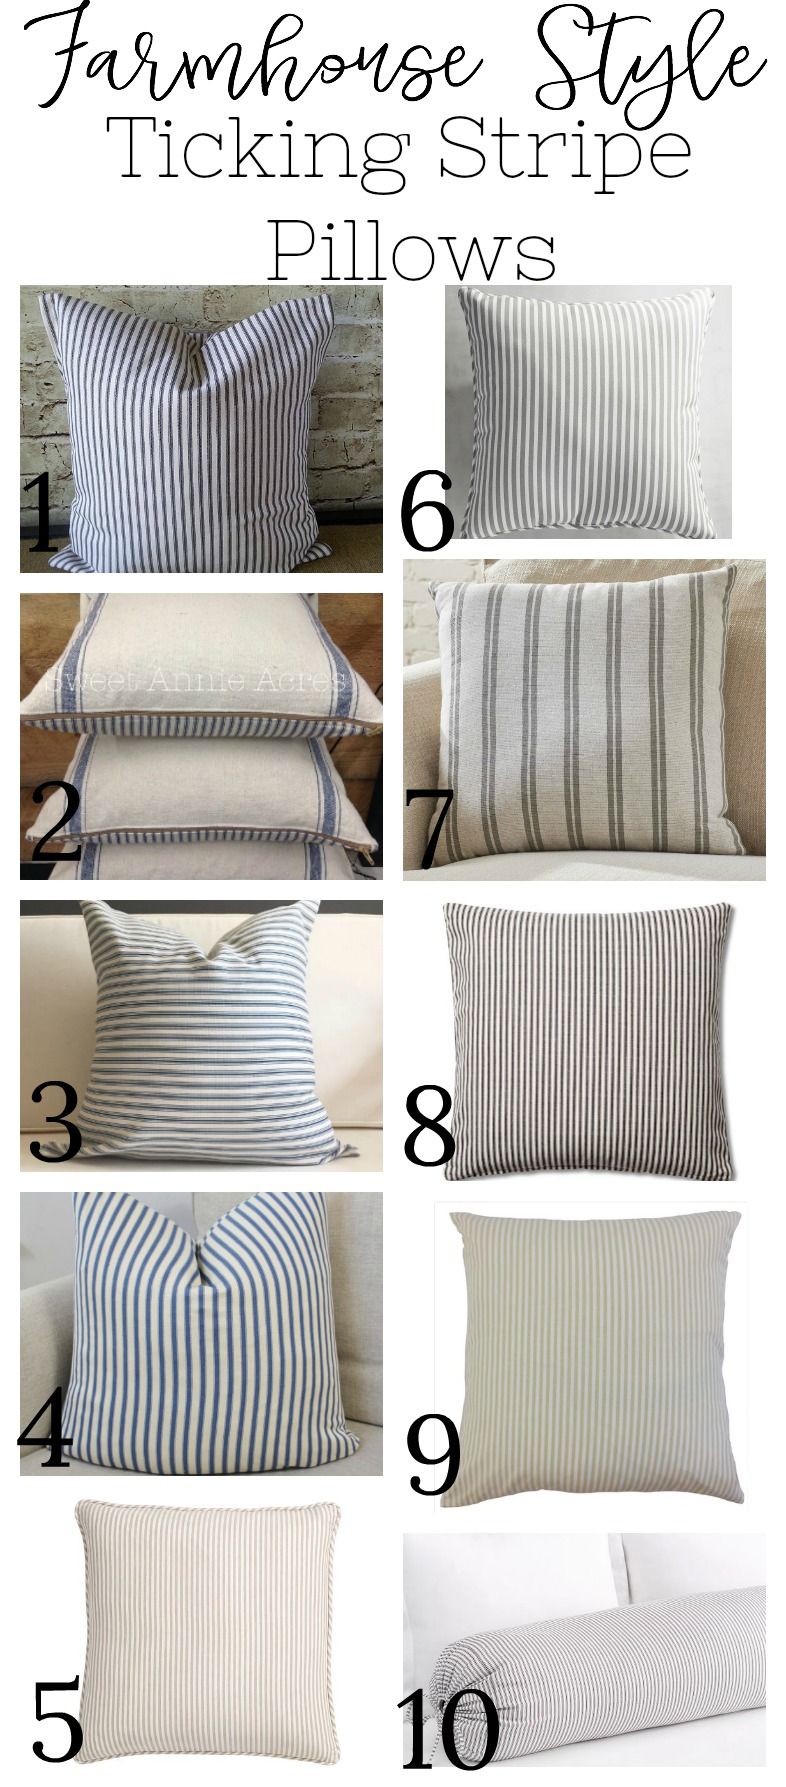 Farmhouse Style Ticking Stripe Pillows